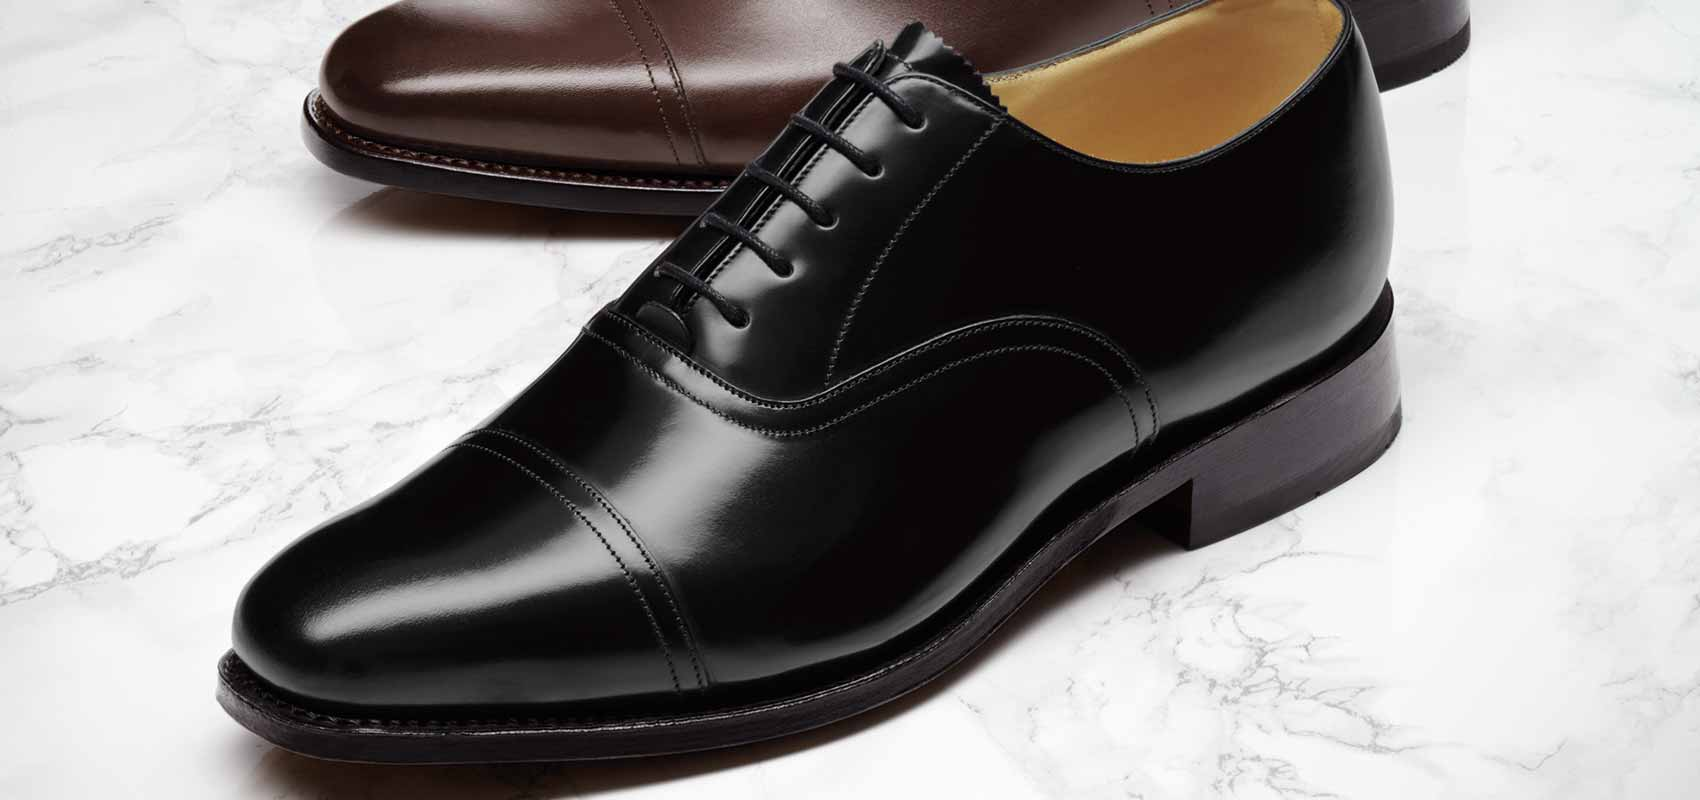 Rubber soled shoes